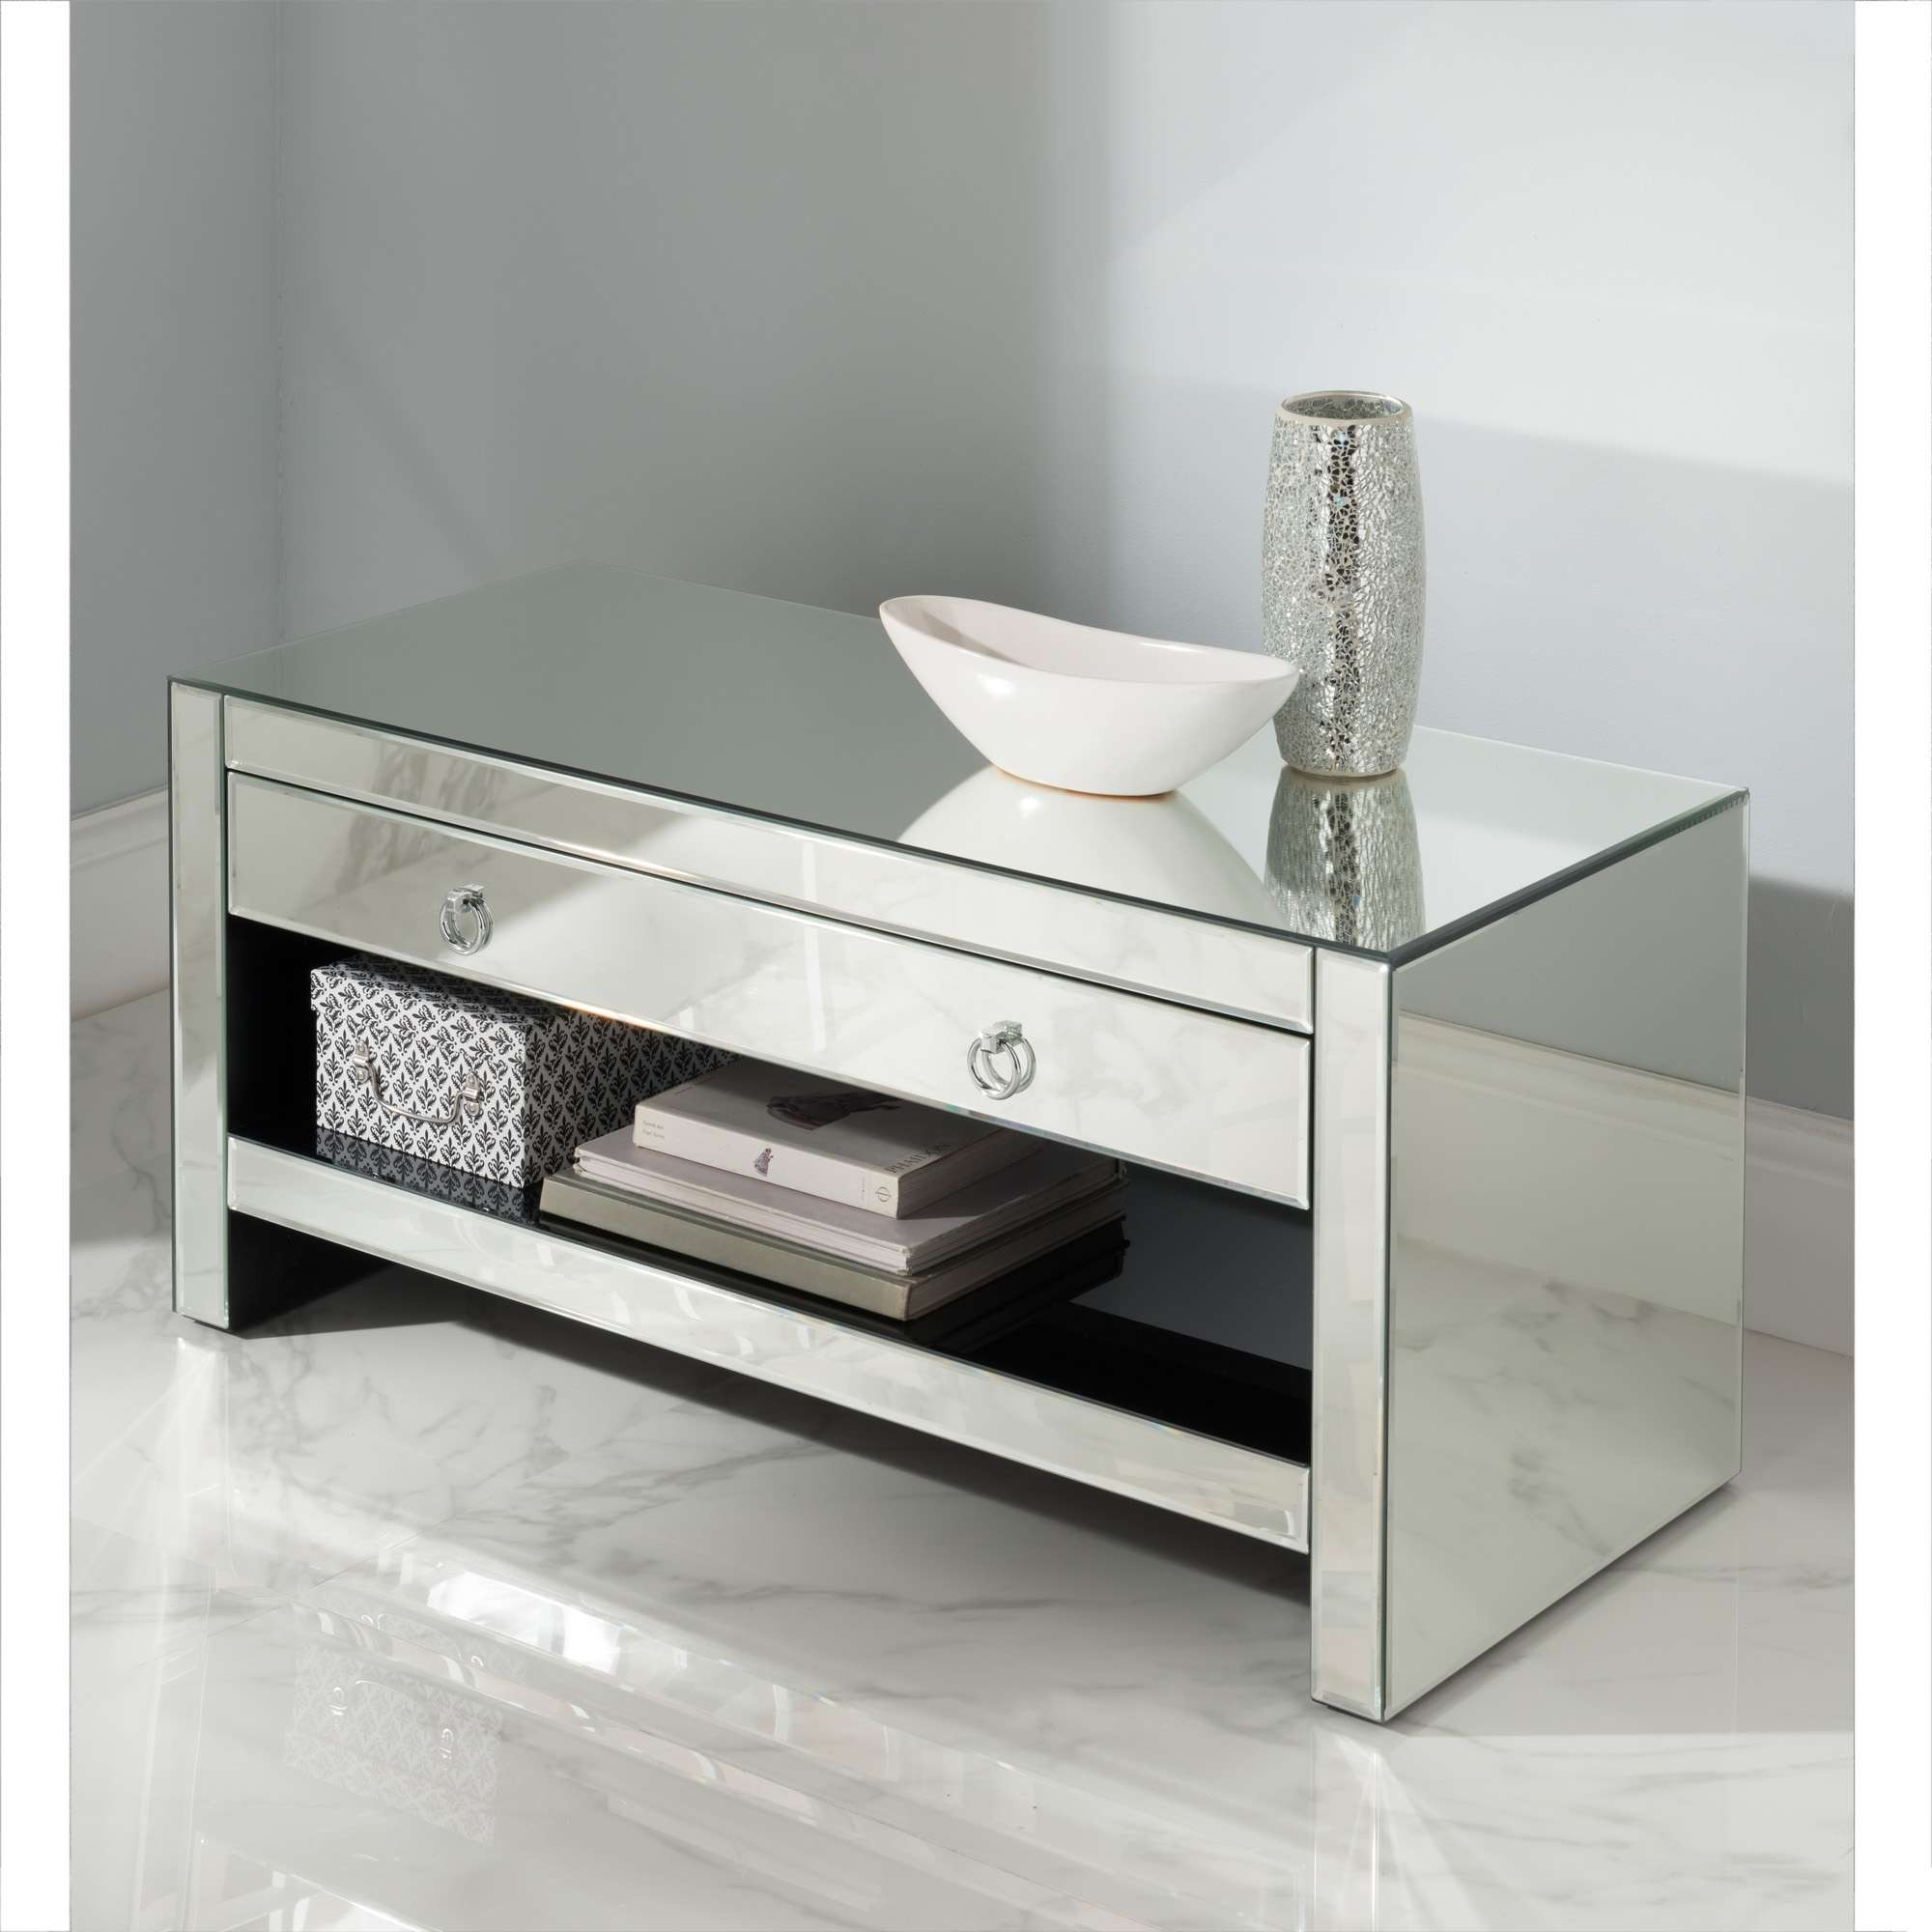 Mirrored Tv Cabinet | Glass Venetian Furniture | Homesdirect365 Inside Mirror Tv Cabinets (View 9 of 20)